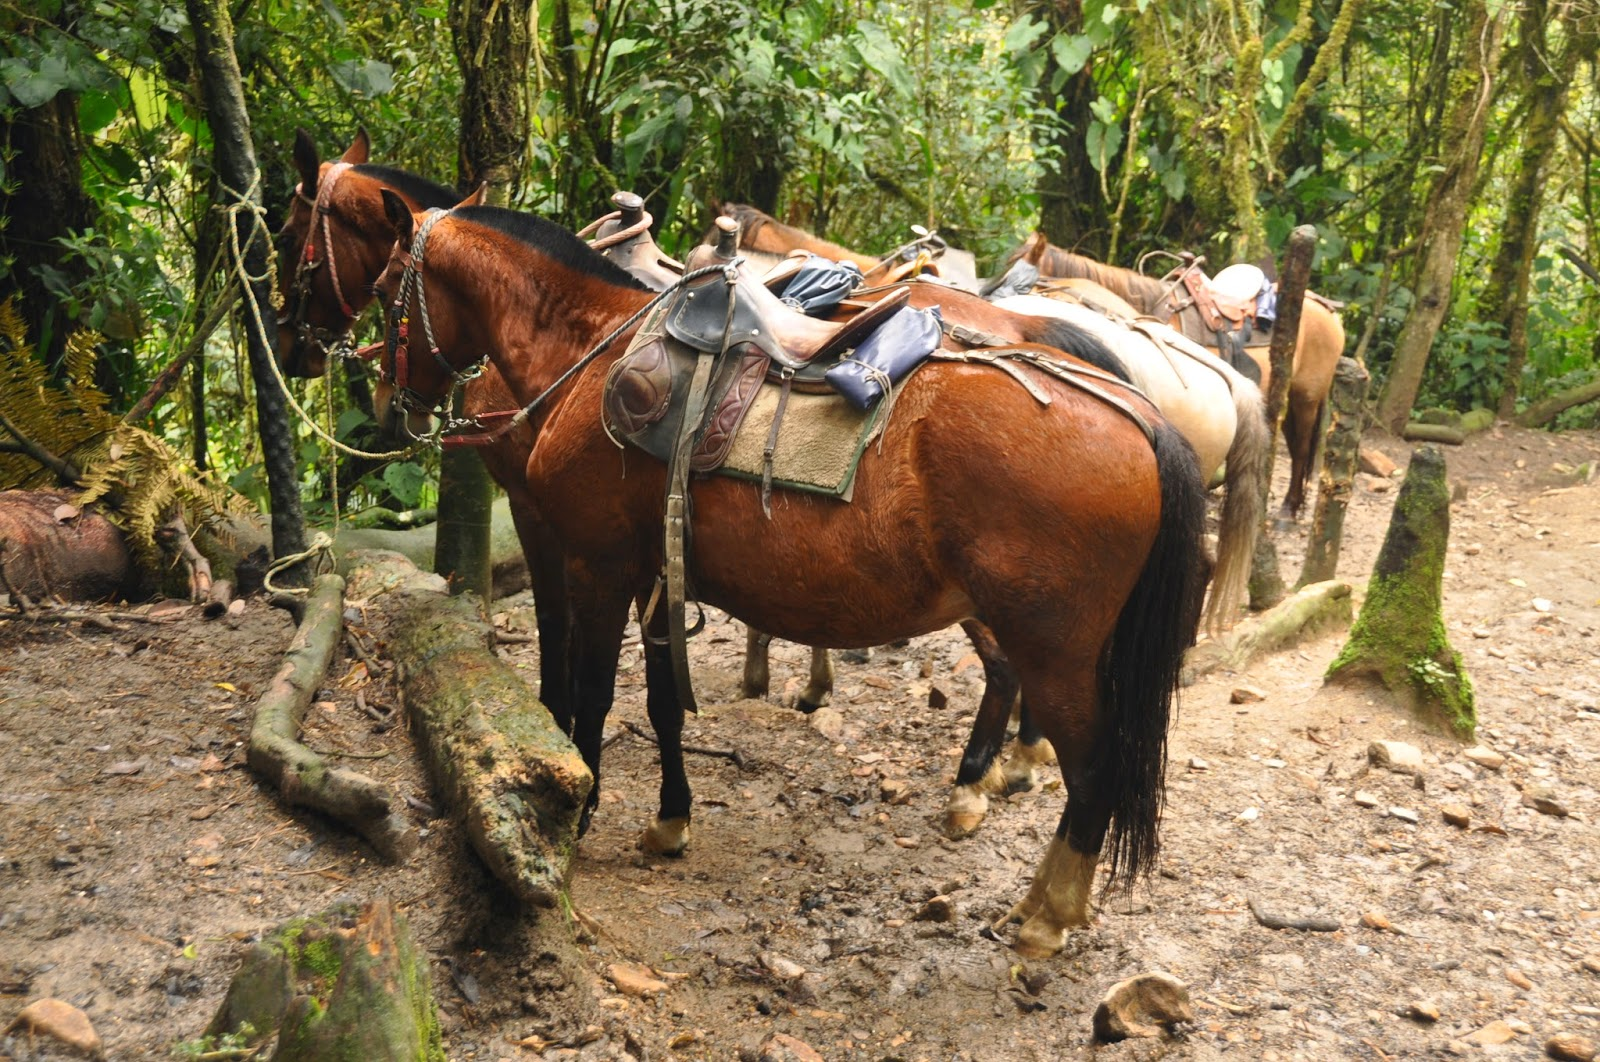 Instead of hiking, some people rode horses through the valley.